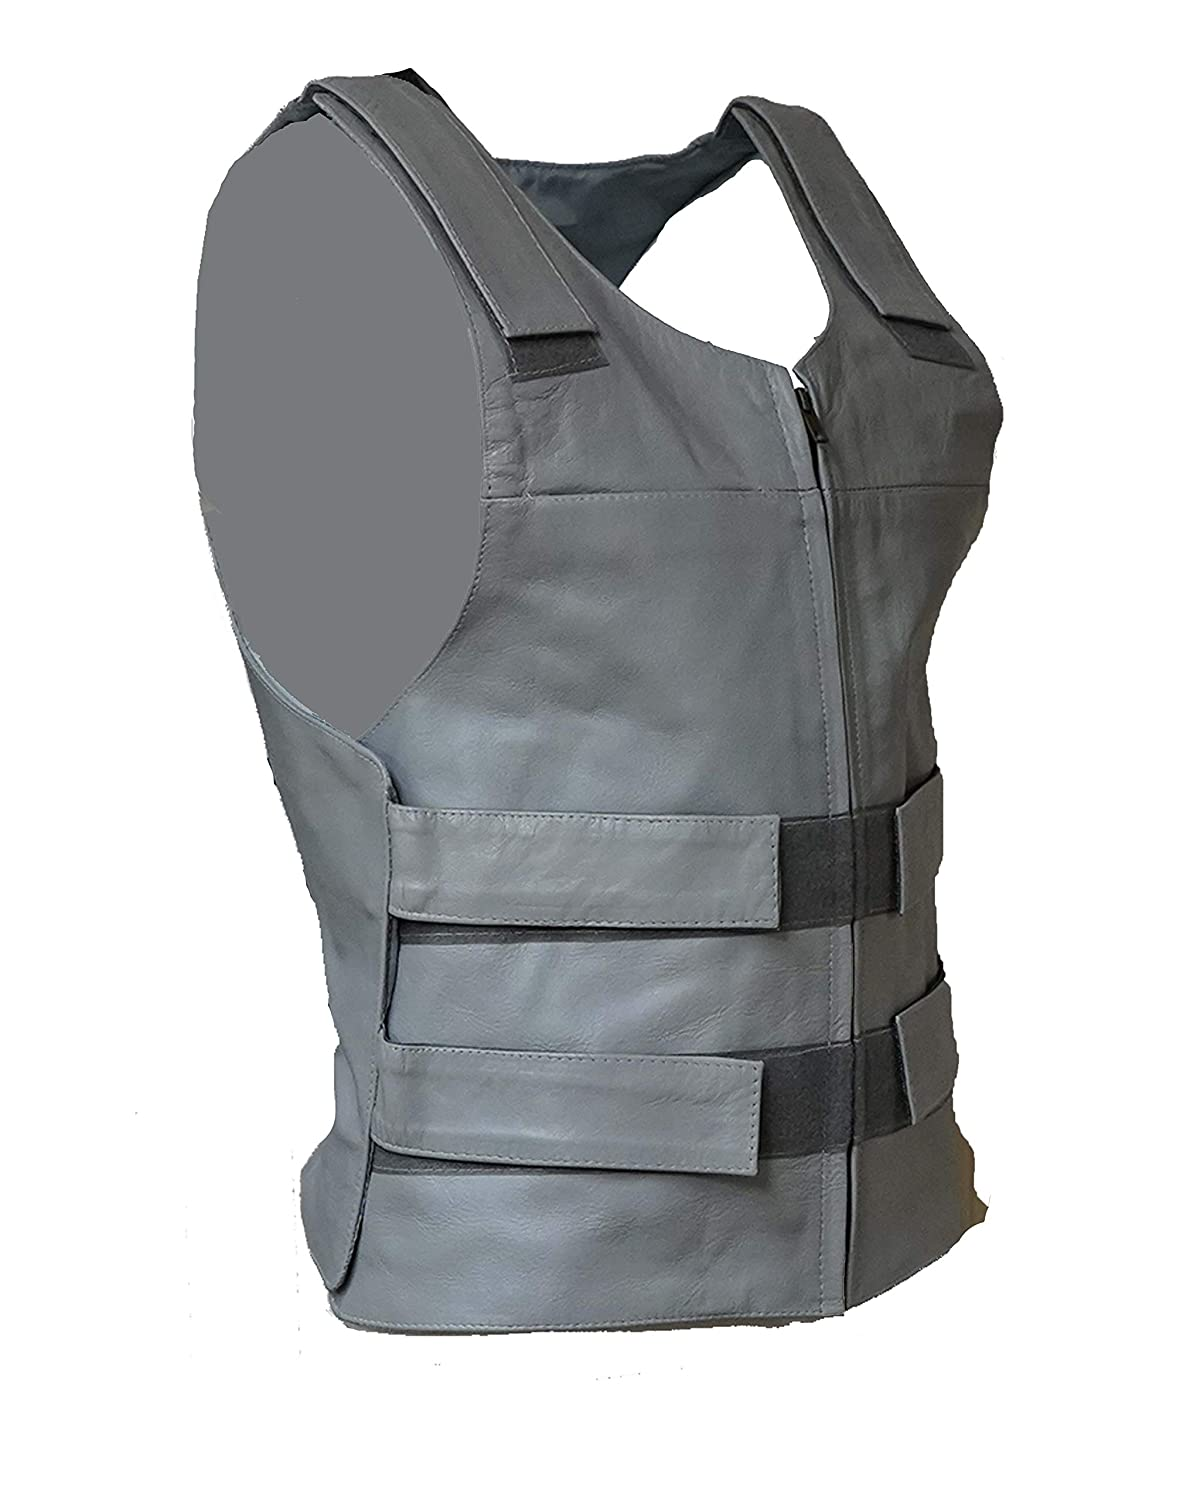 S, Orange IKleather Mens Bullet Proof style Leather Motorcycle Vest for bikers Club Tactical Vest